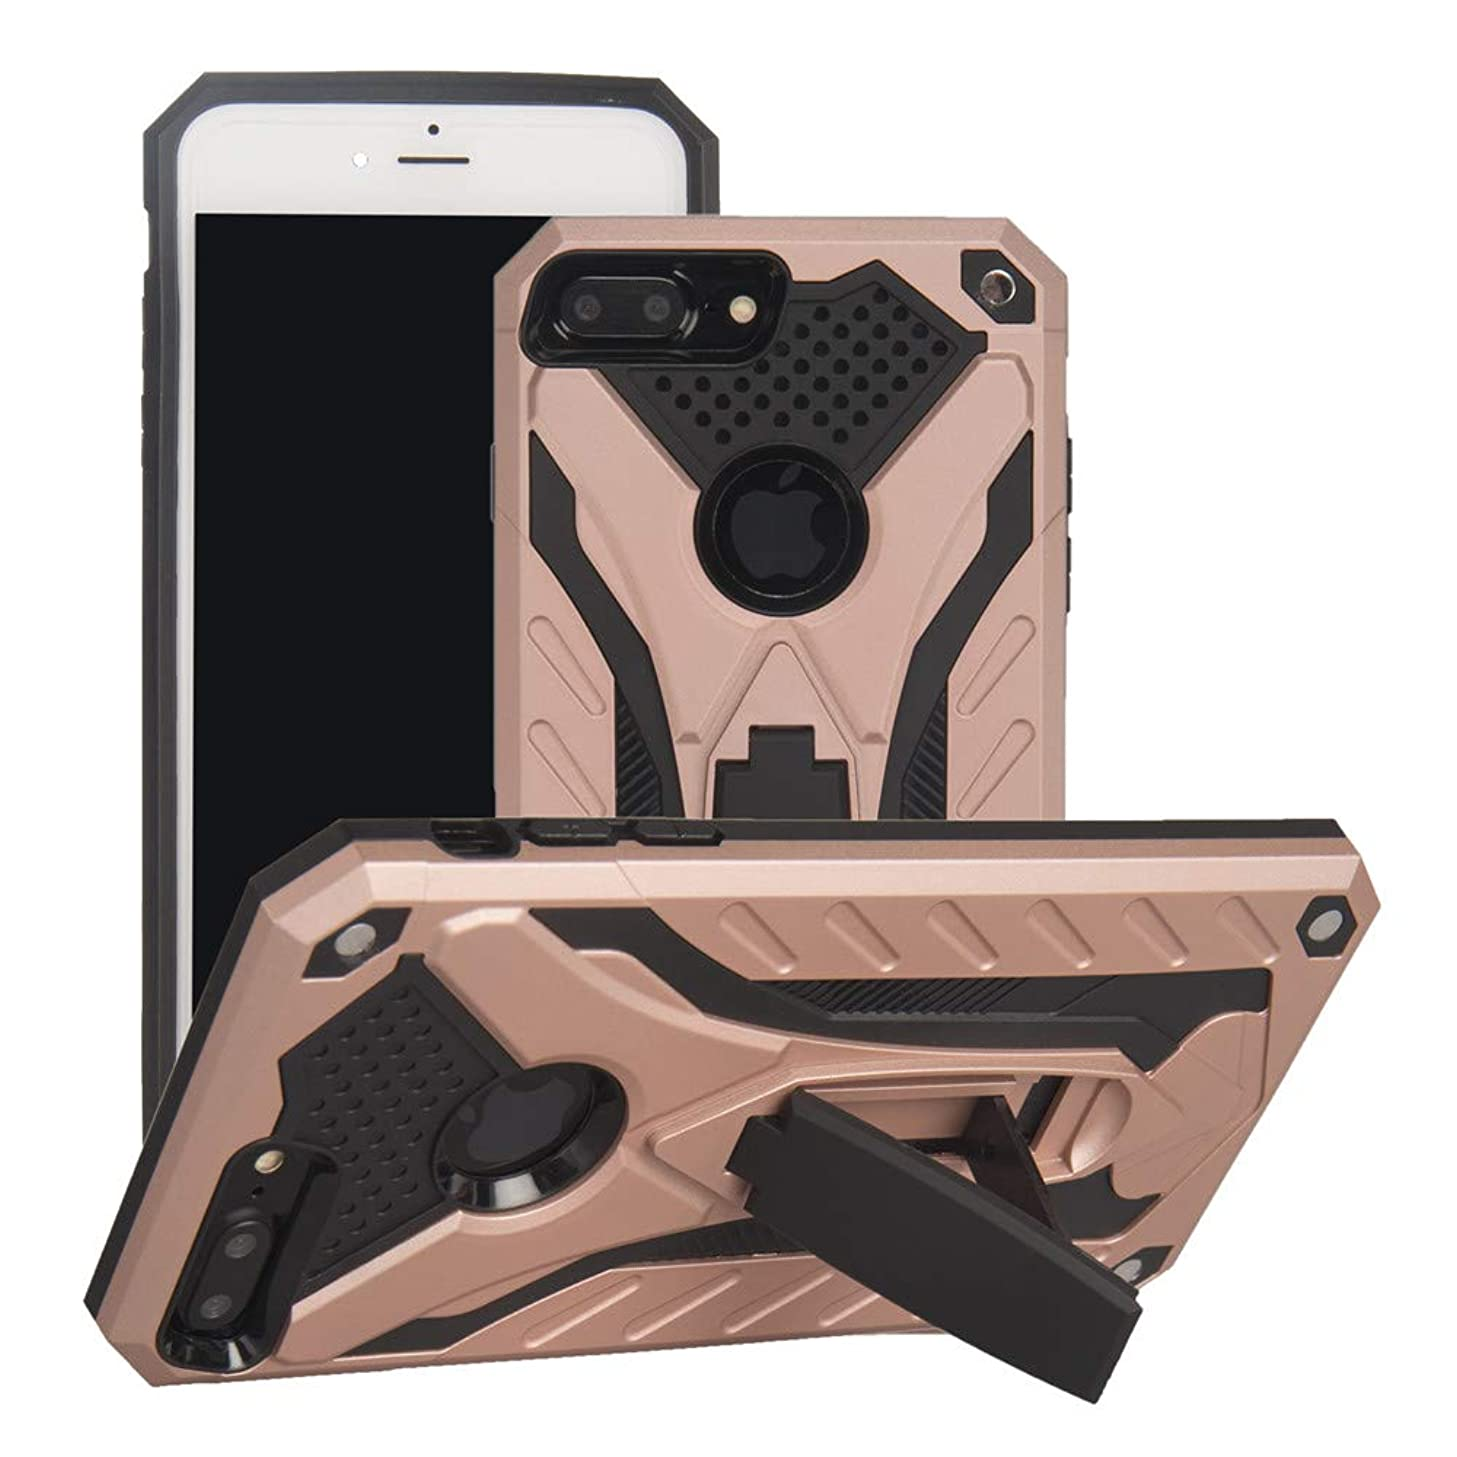 IVY [2 in 1][Kickstand] Phone Cases with Military Drop Tested Impact Resistant Heavy Duty Silica Gel & PC Cover for iPhone 8 Plus/7 Plus - Rose Gold